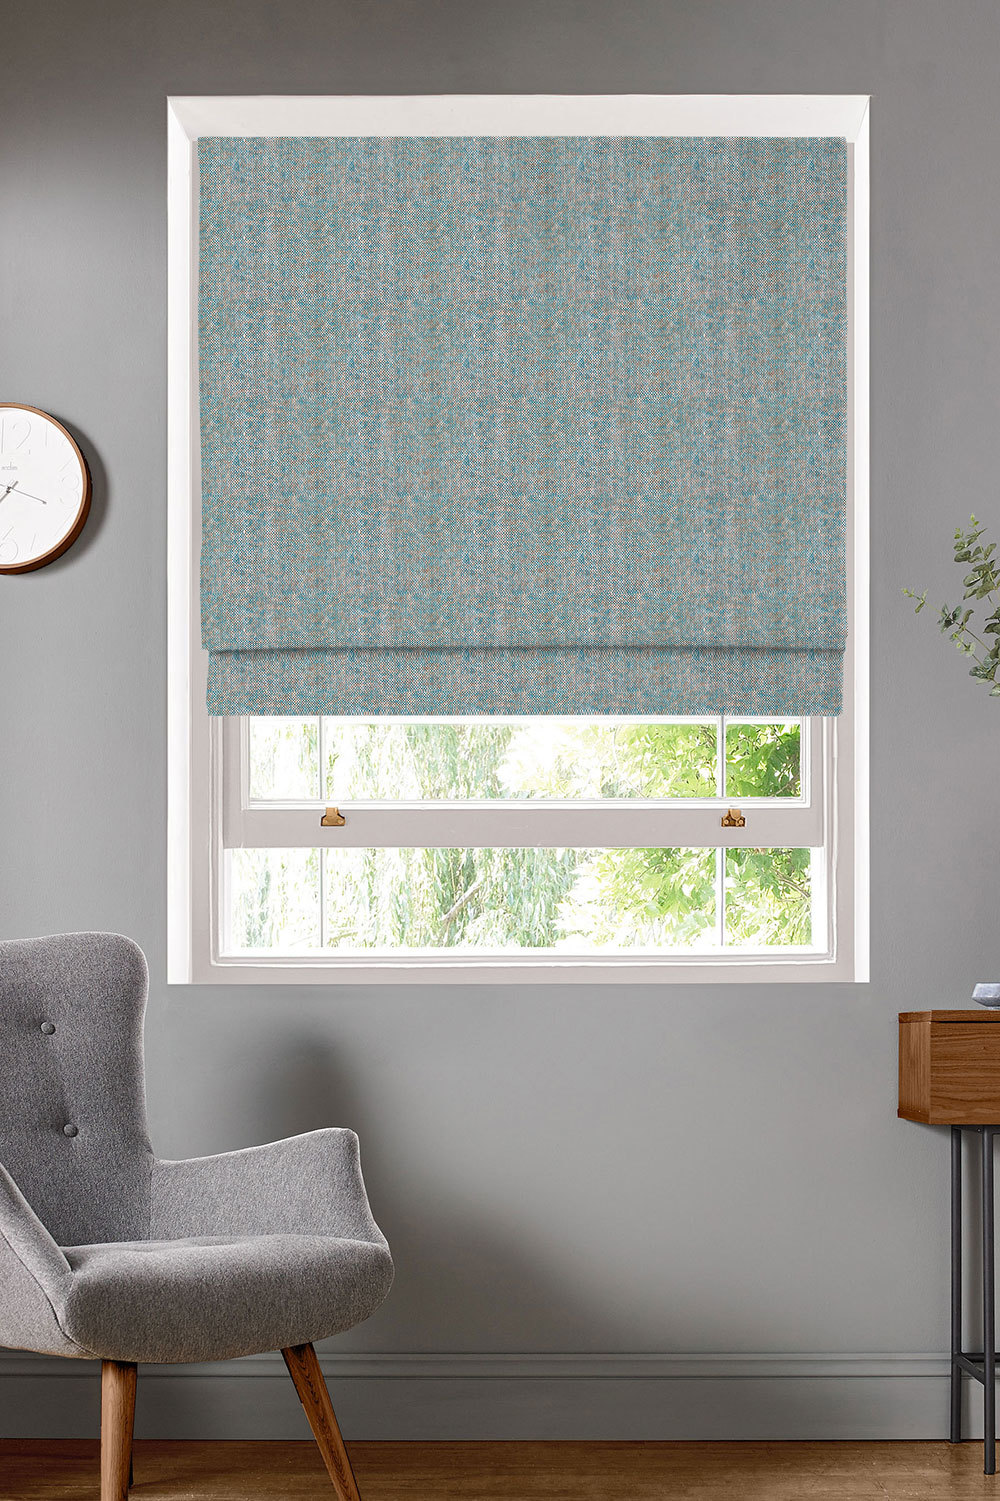 Merino Duck Egg Roman Blinds